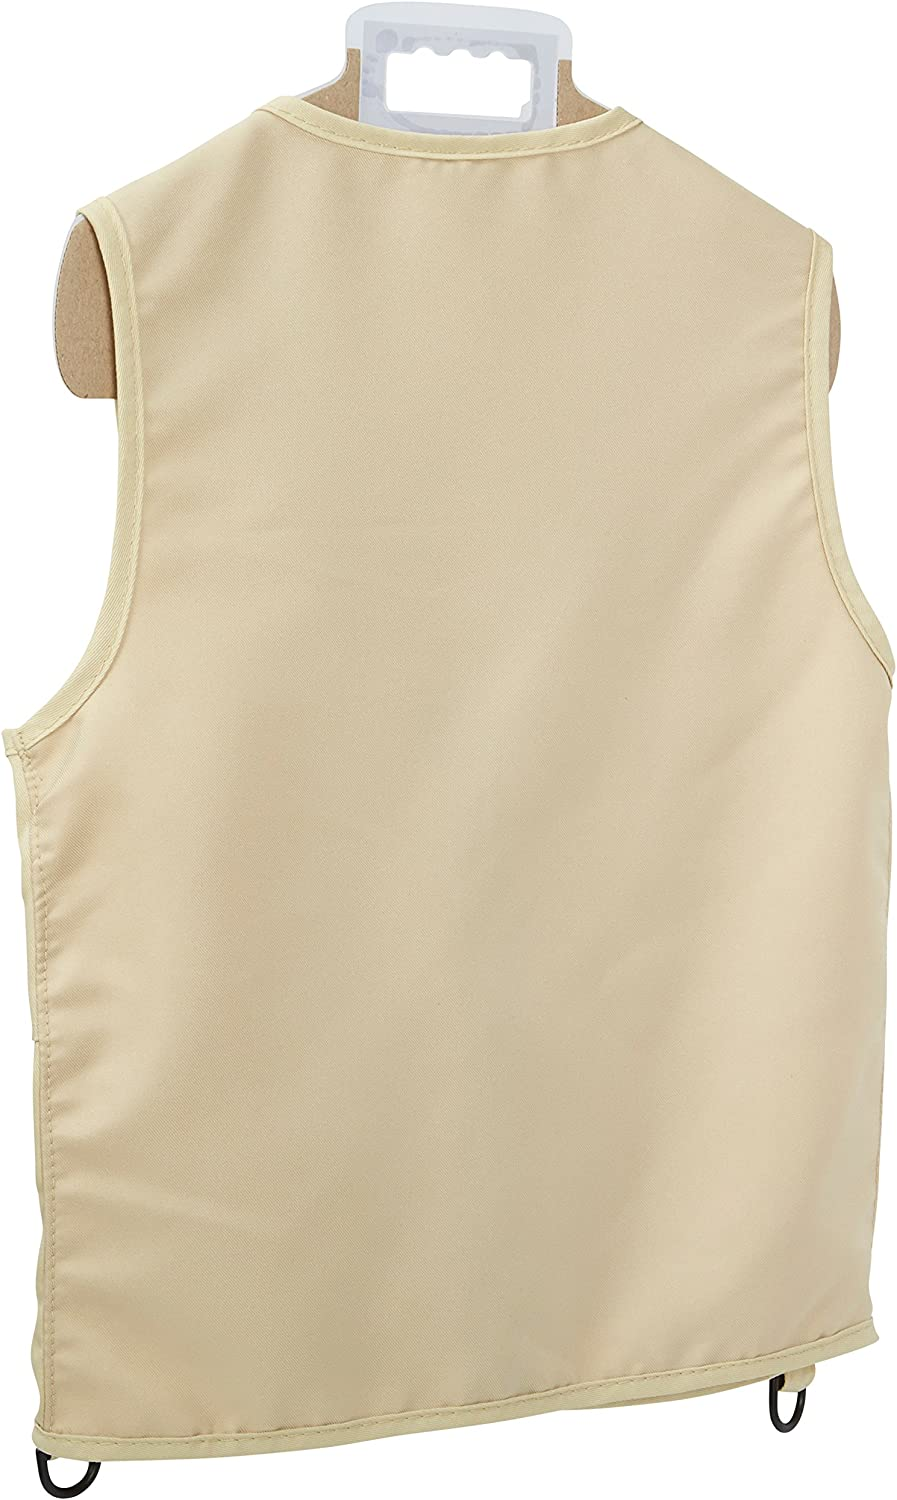 ChildWaistcoat for Funand Dino Adventure like Andy/'s,Size for 3 to 4 years old